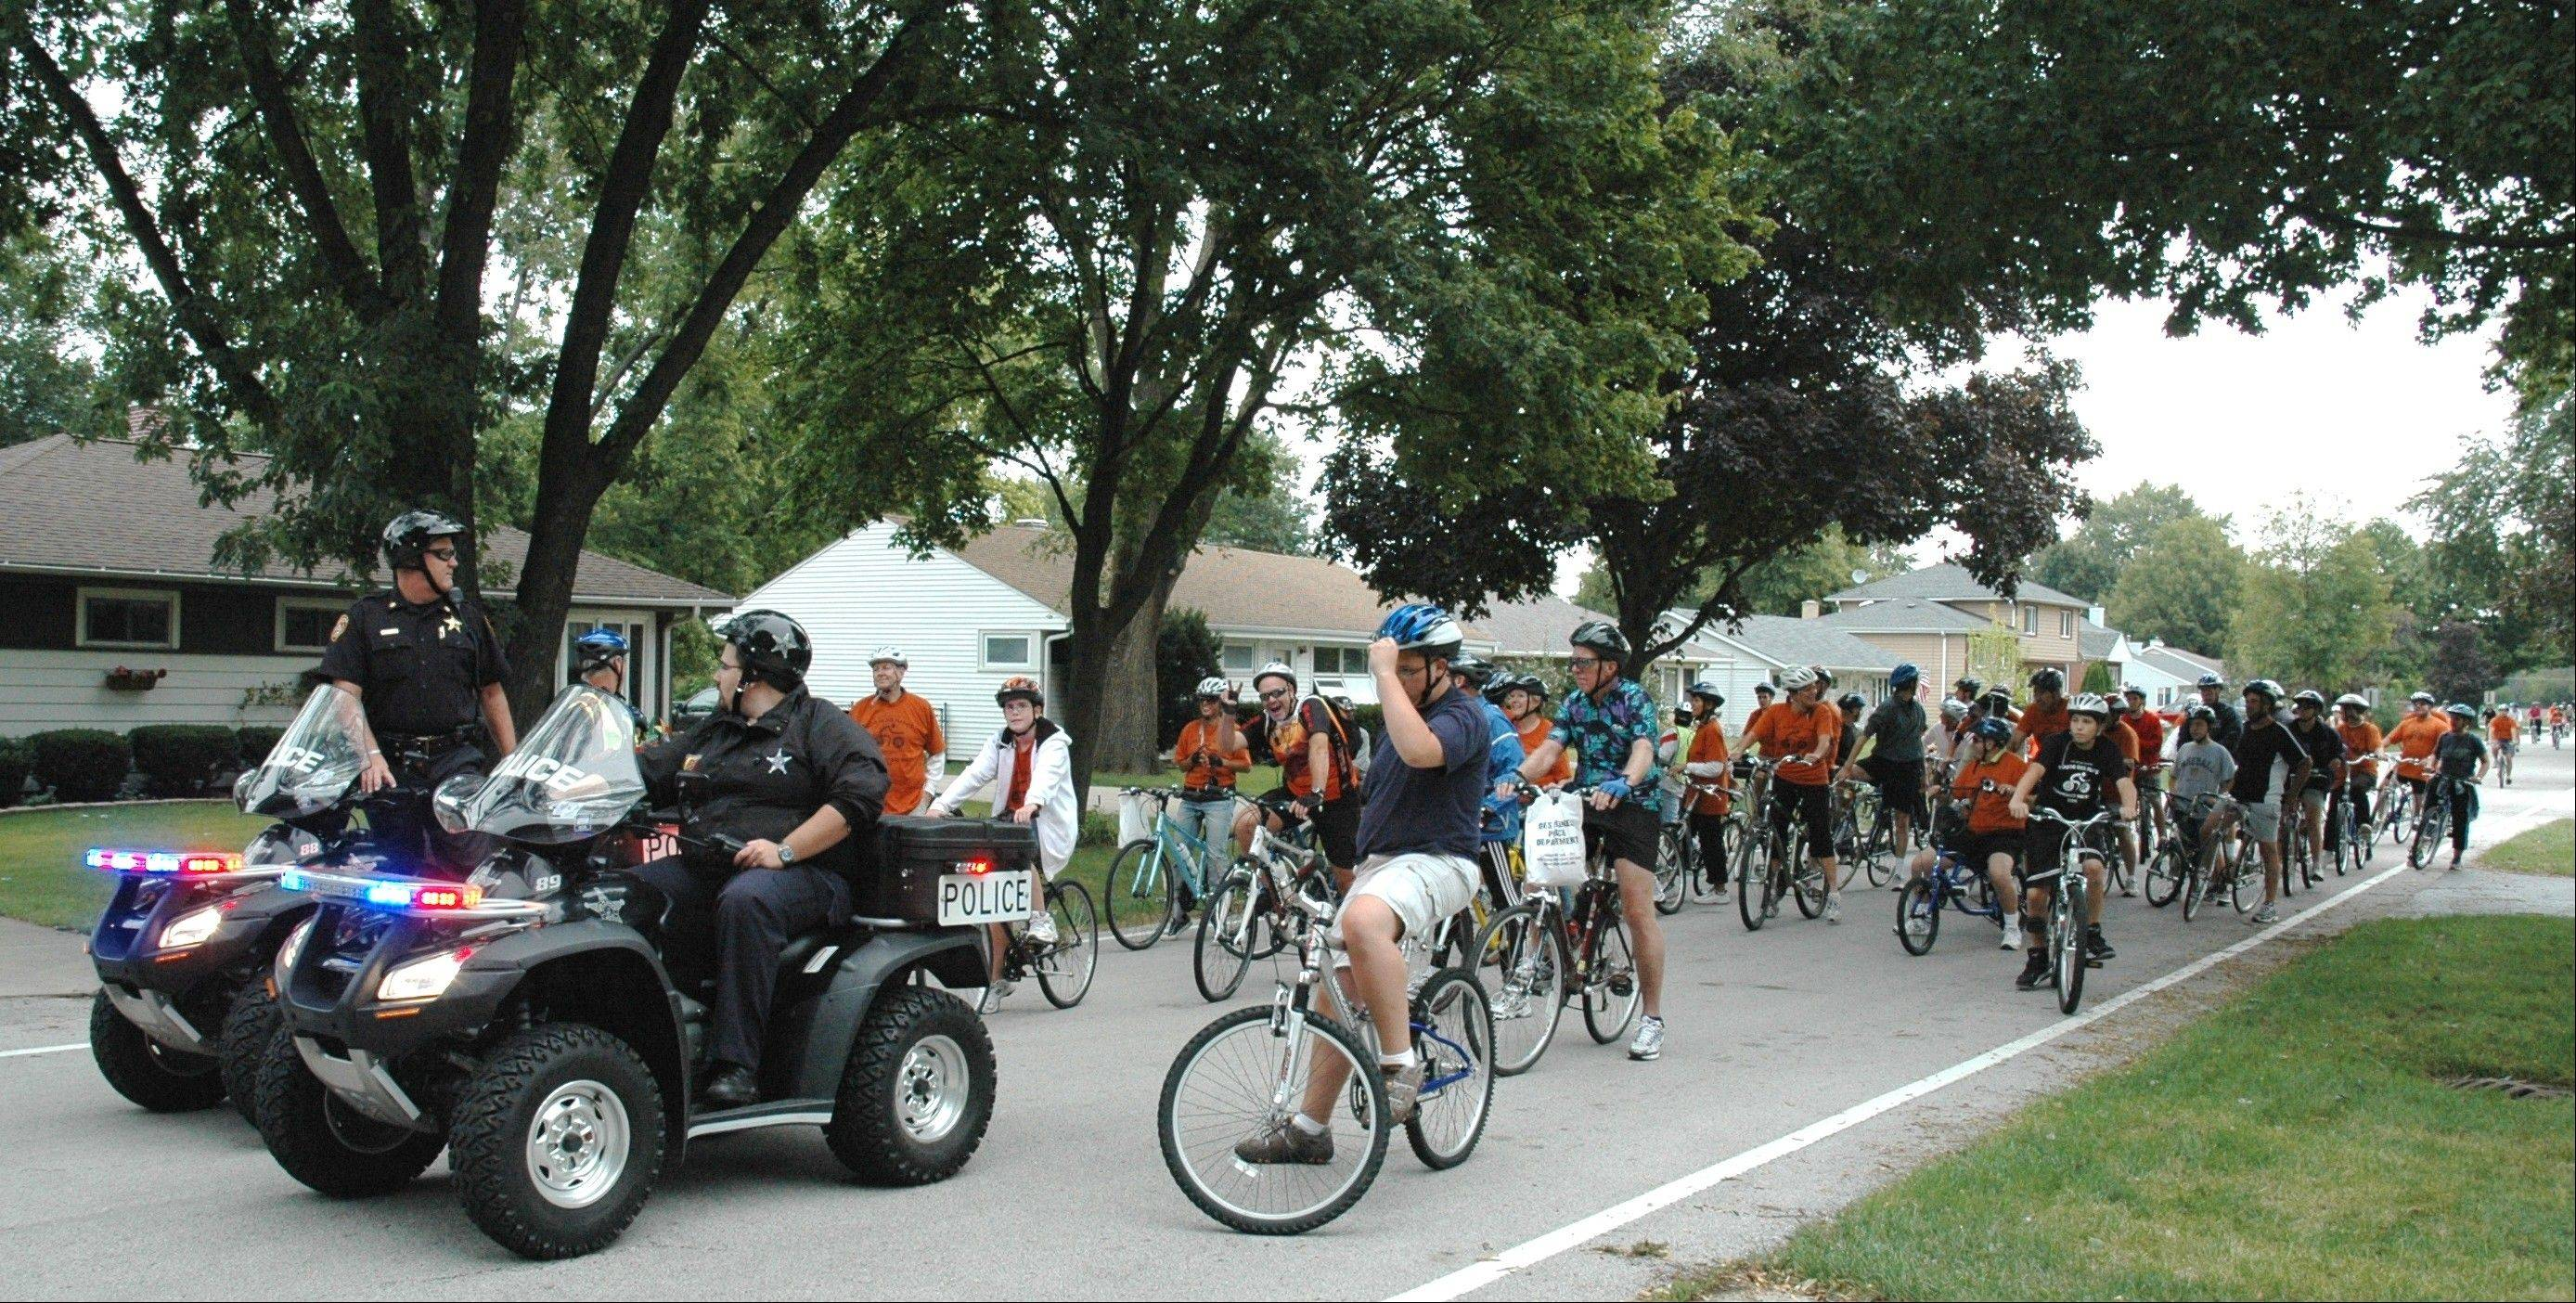 Des Plaines Police officers lead a previous Tour De Des Plaines Bike Ride. This year�s nine-mile, police escorted, family friendly ride will take place Saturday, Sept. 17, leaving from Lake Park, at Howard and Lee streets, in Des Plaines.